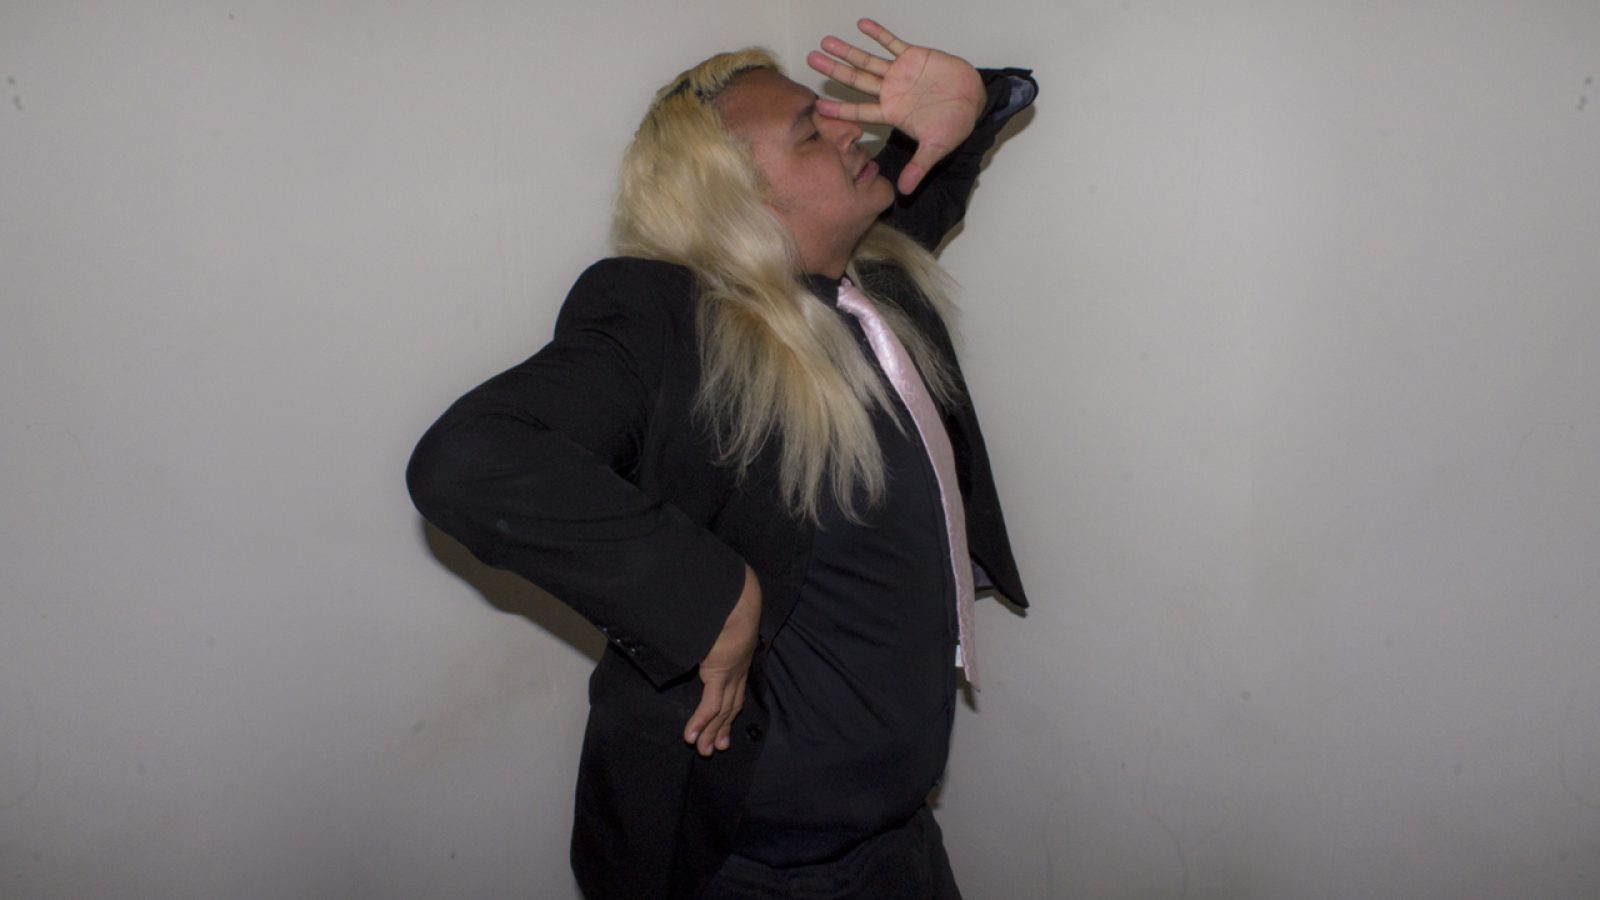 A young, light skinned man with long, blonde, wavy hair and brown eyes, wearing a black suit and shirt with a pink silk tie stands against a light grey background. He strikes a dramatic pose, facing the camera side on with one hand on his waist and the other against his face.